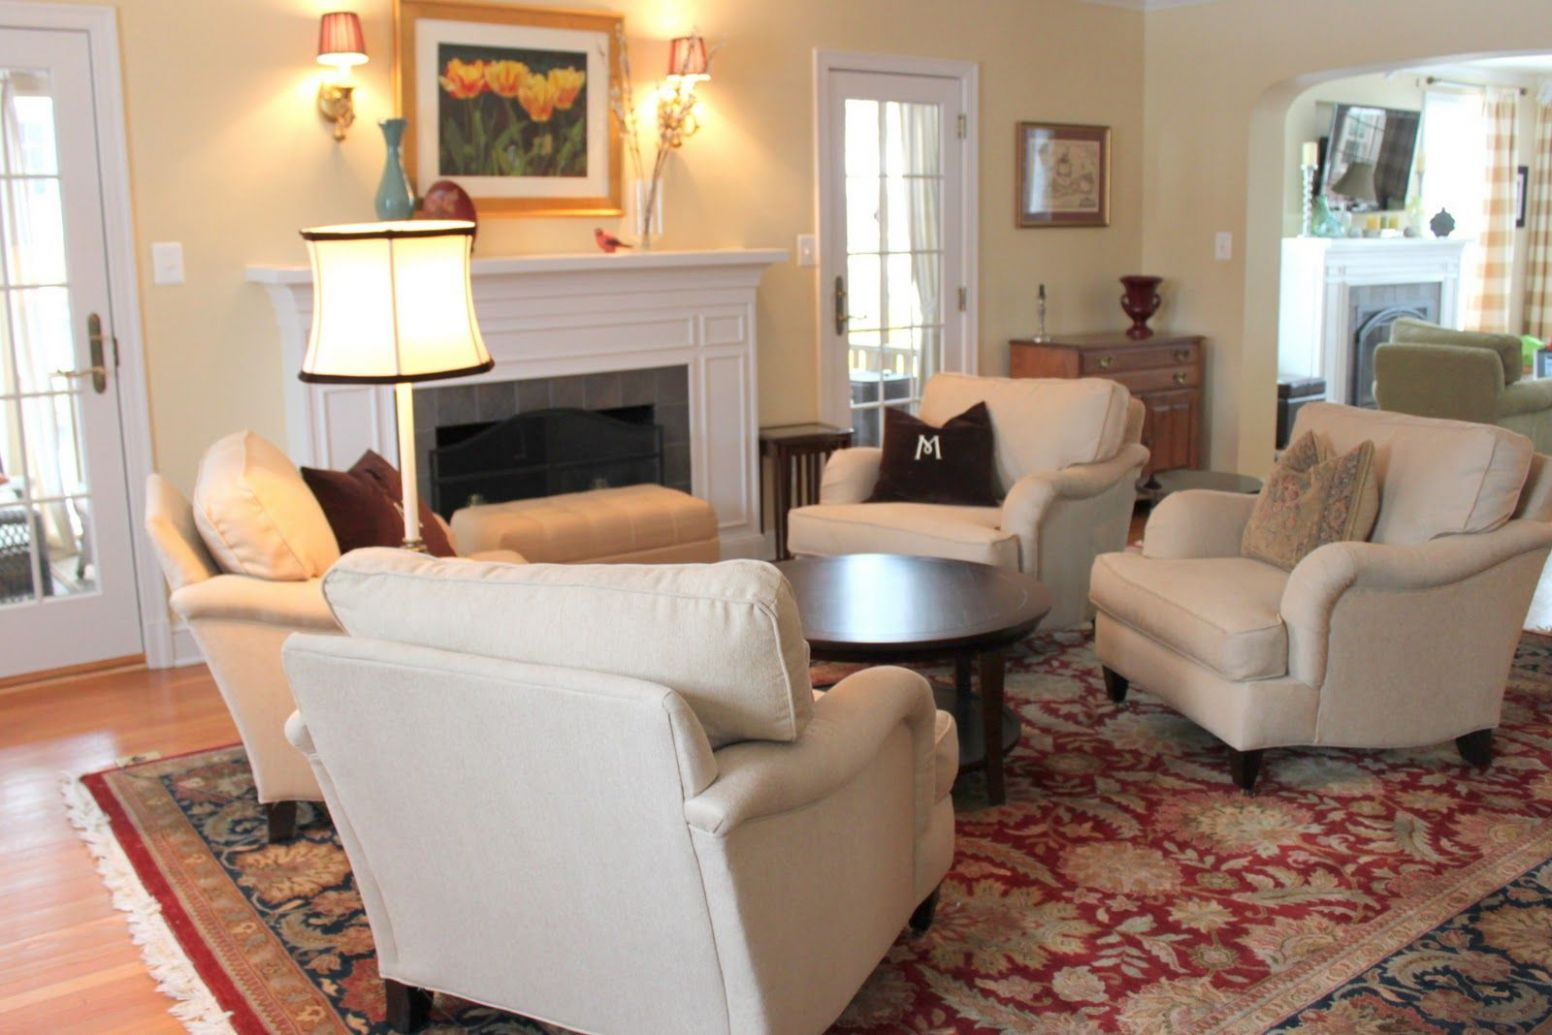 living room with just comfy chairs, no sofa | Living room without ..